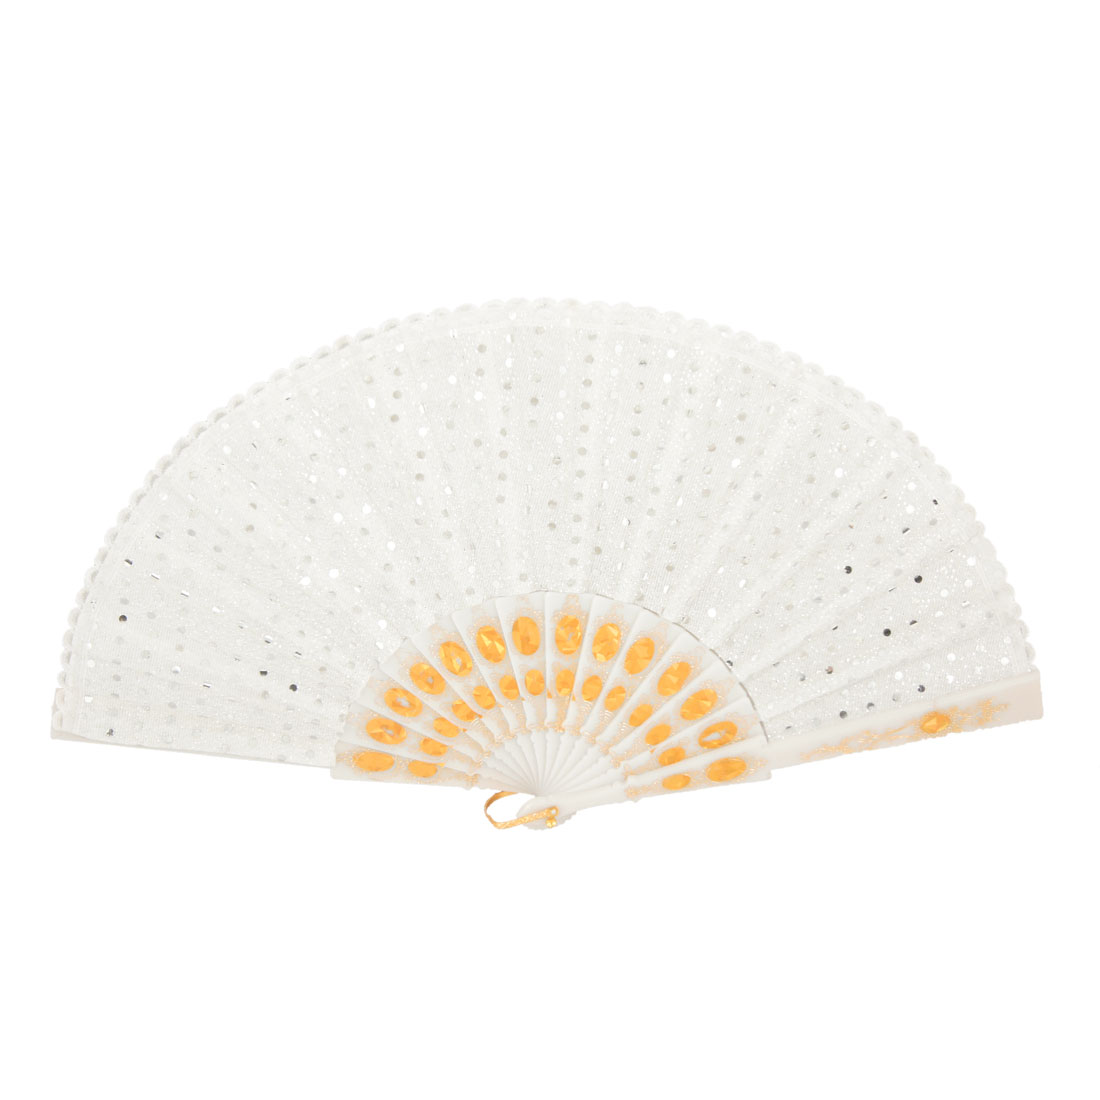 White Lace Fabric Glittery Round Sequins Decor Folding Hand Fan